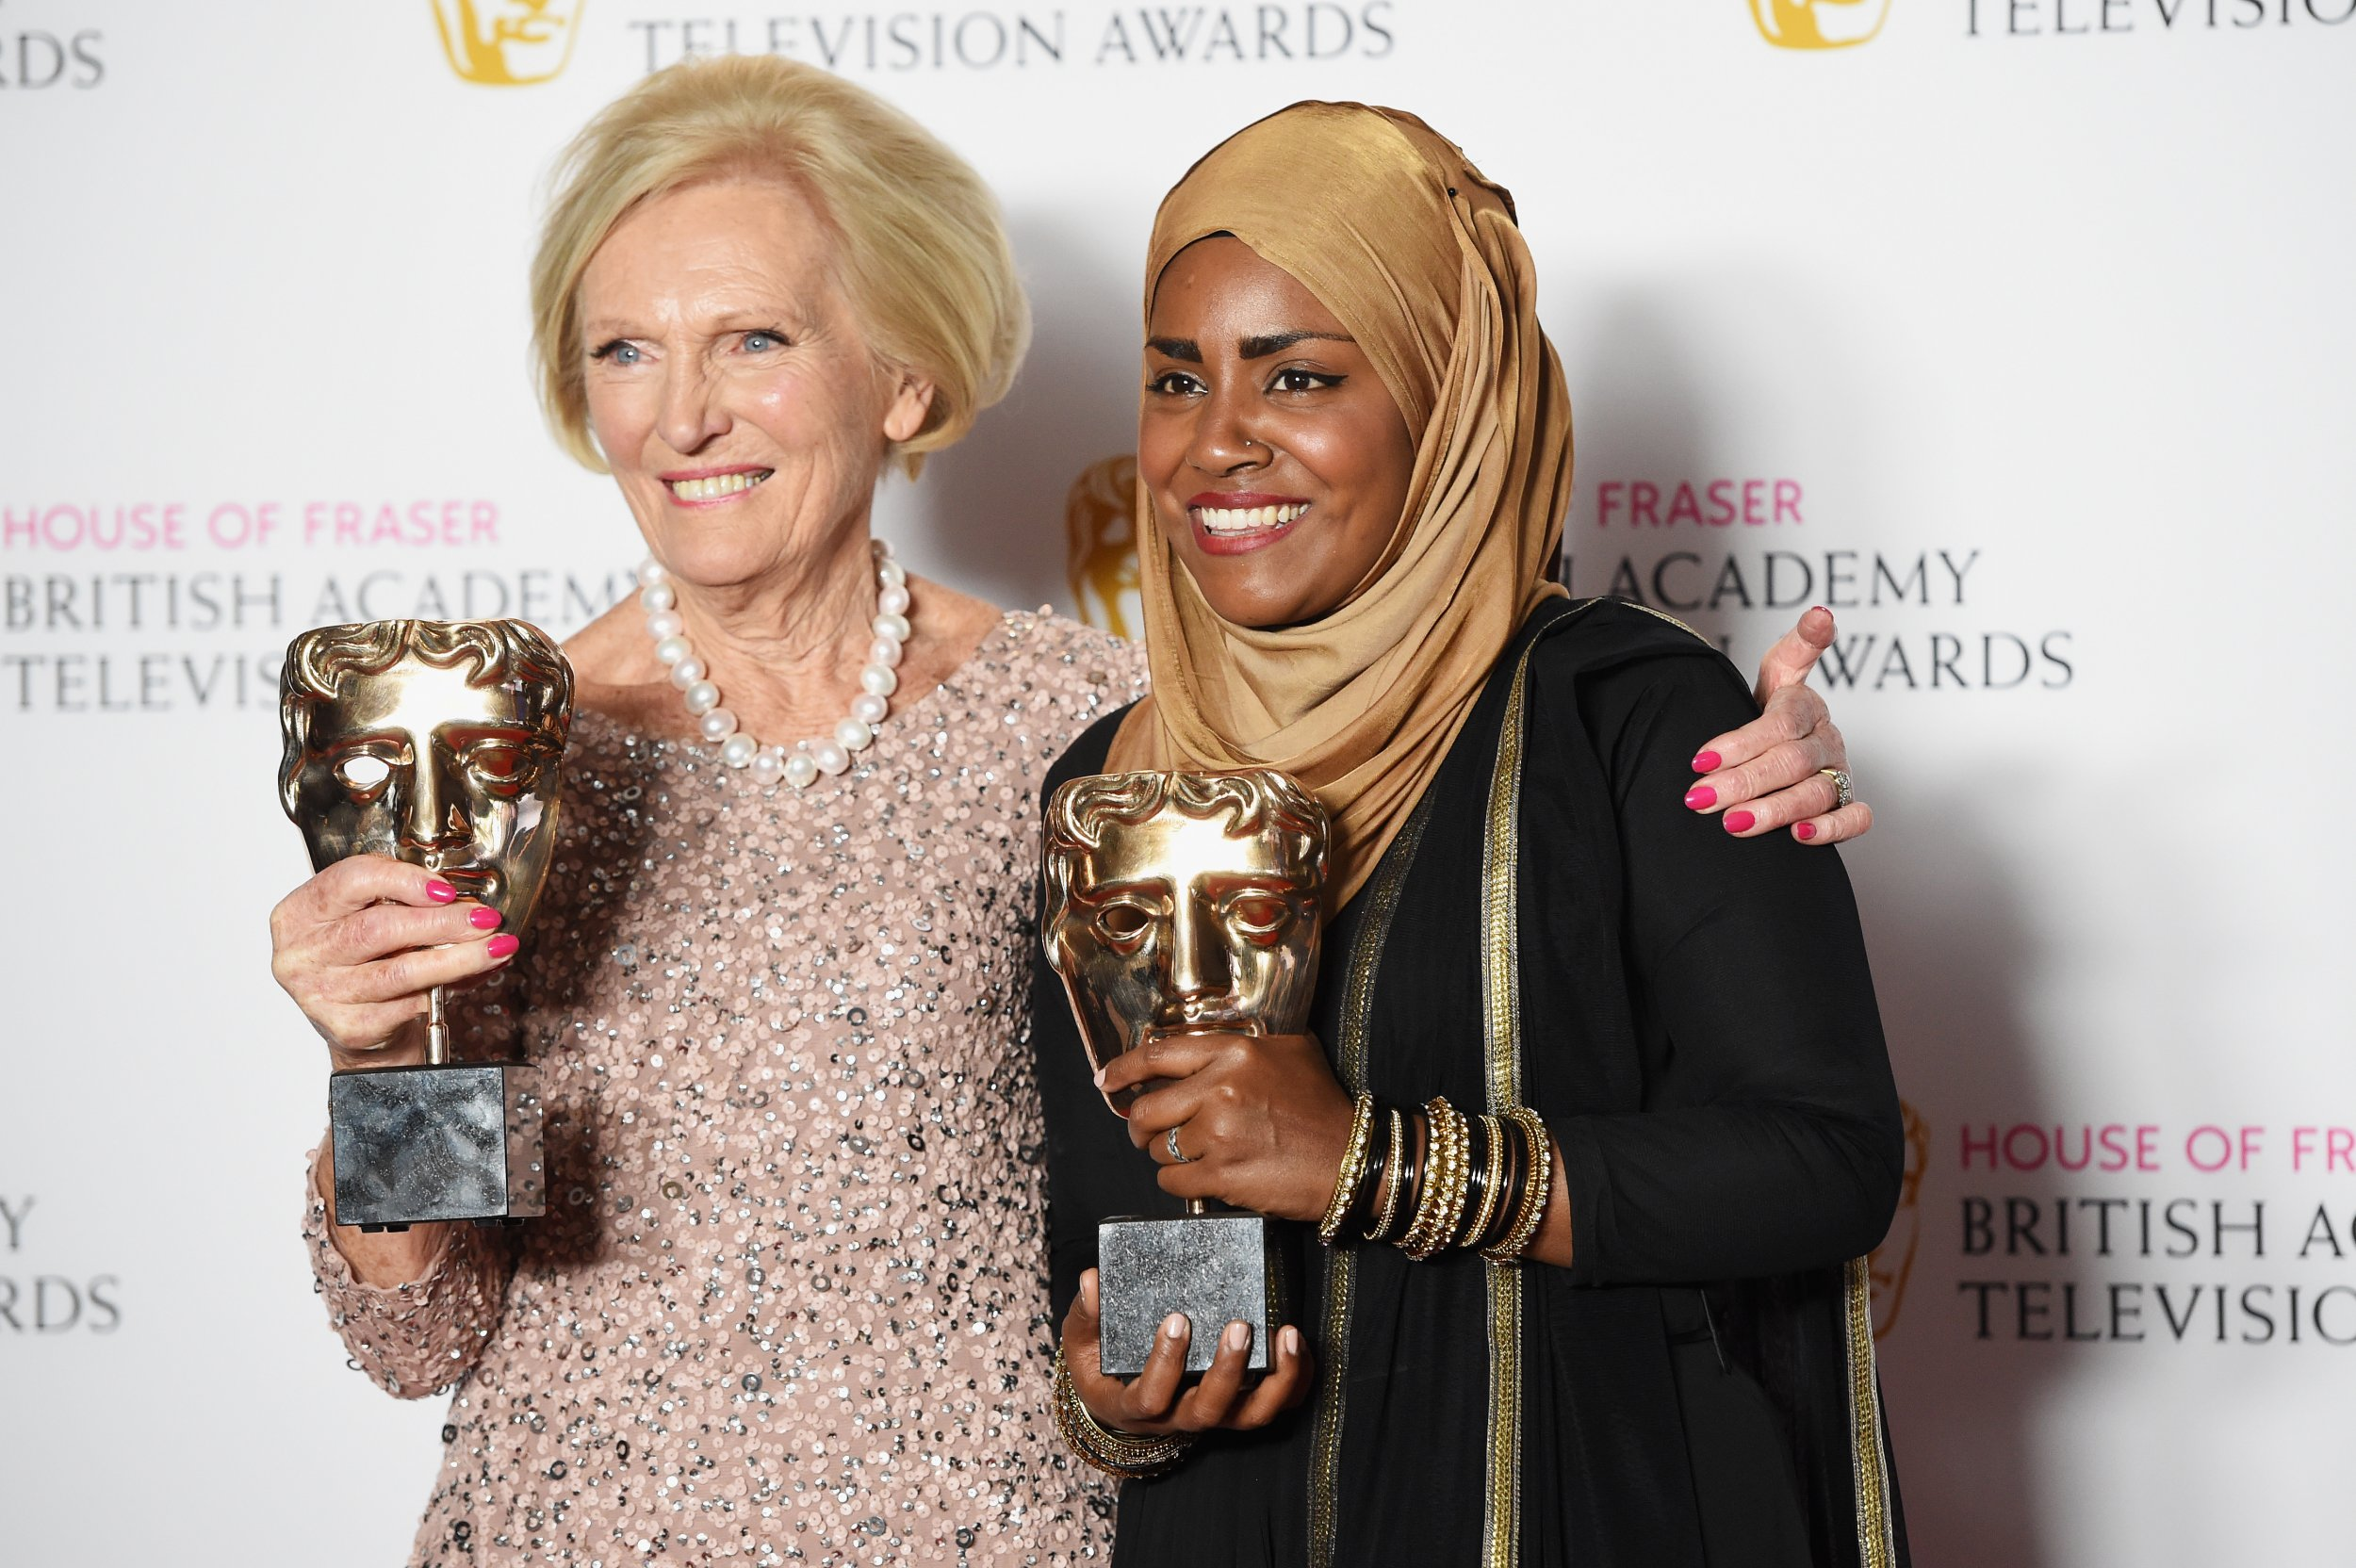 Bake Off wins BAFTA